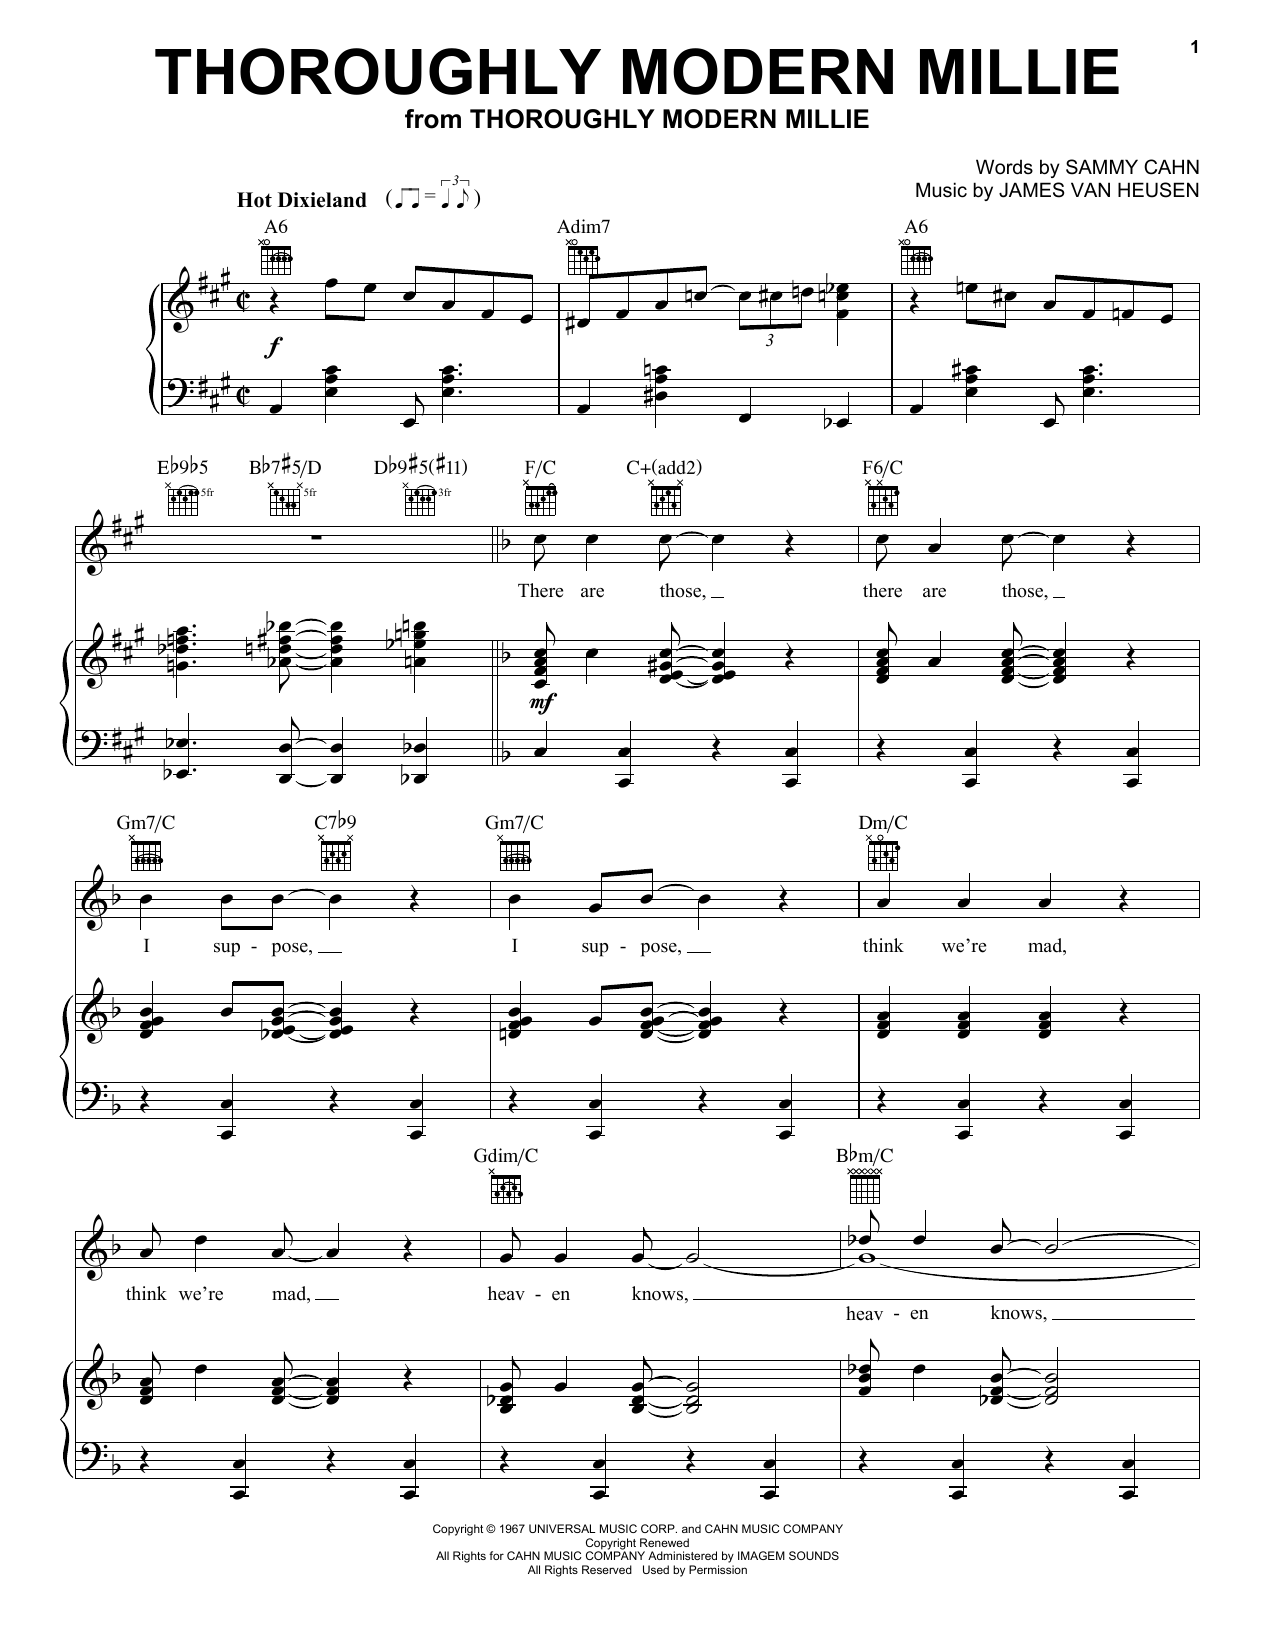 Sammy Cahn Thoroughly Modern Millie sheet music notes and chords